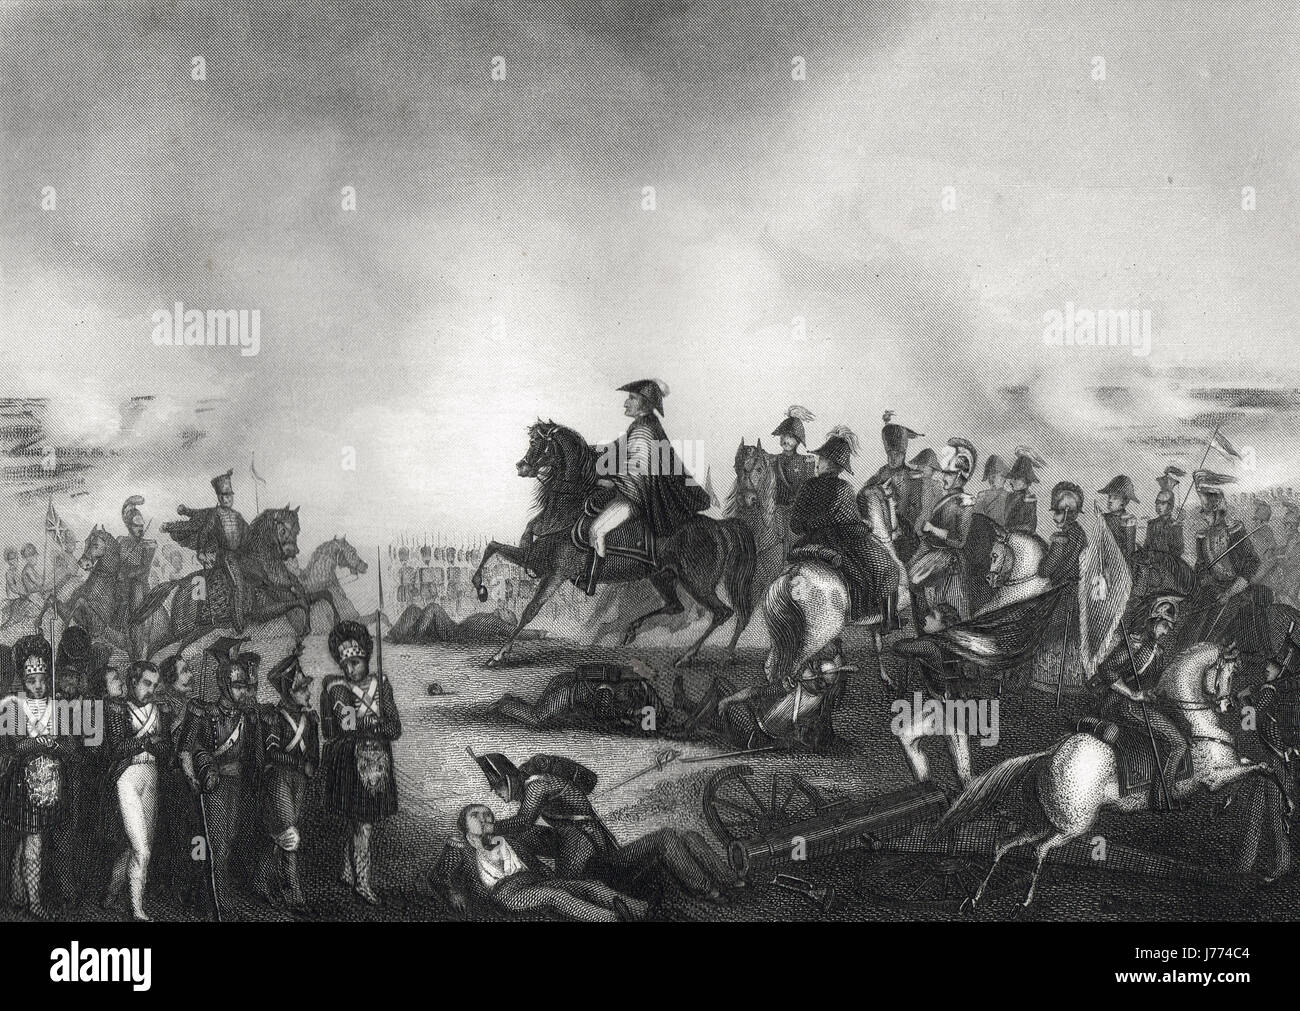 Duke of Wellington & his staff at  The Battle of Waterloo 1815 - Stock Image